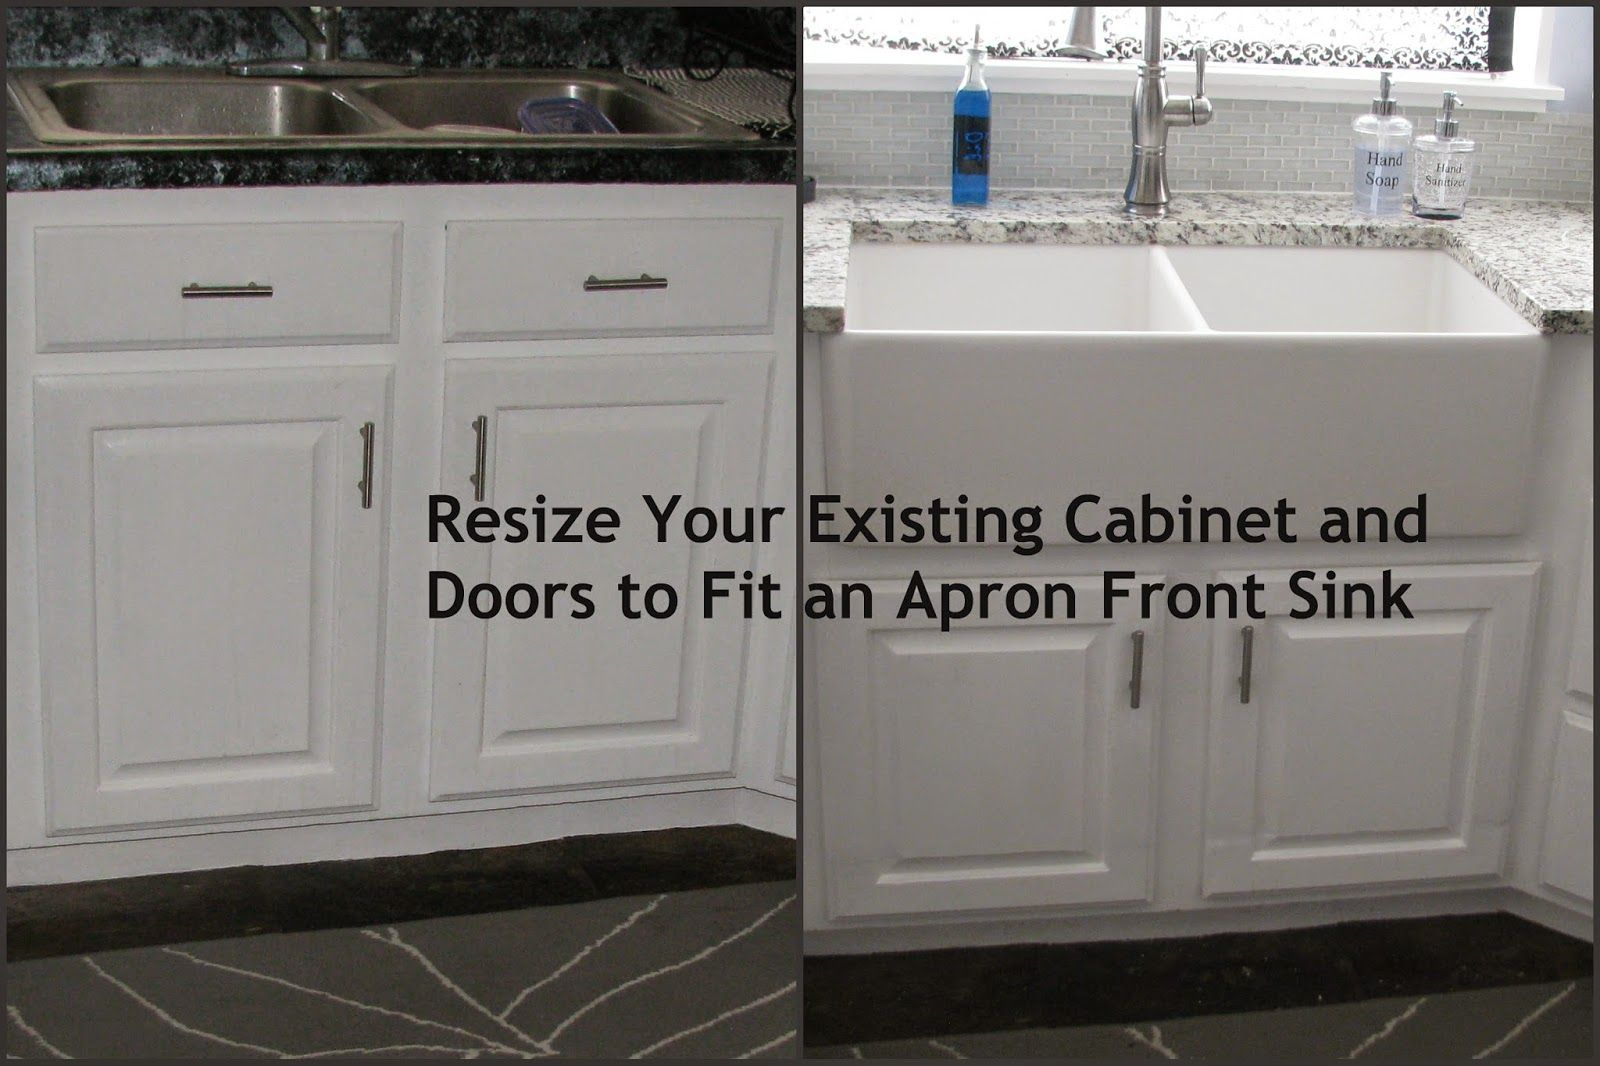 My So Called Diy Blog Resize Your Existing Cabinet And Doors To Fit An Apron Front Sink Farmhouse Sink Kitchen Farmhouse Sink Installation Apron Front Sink